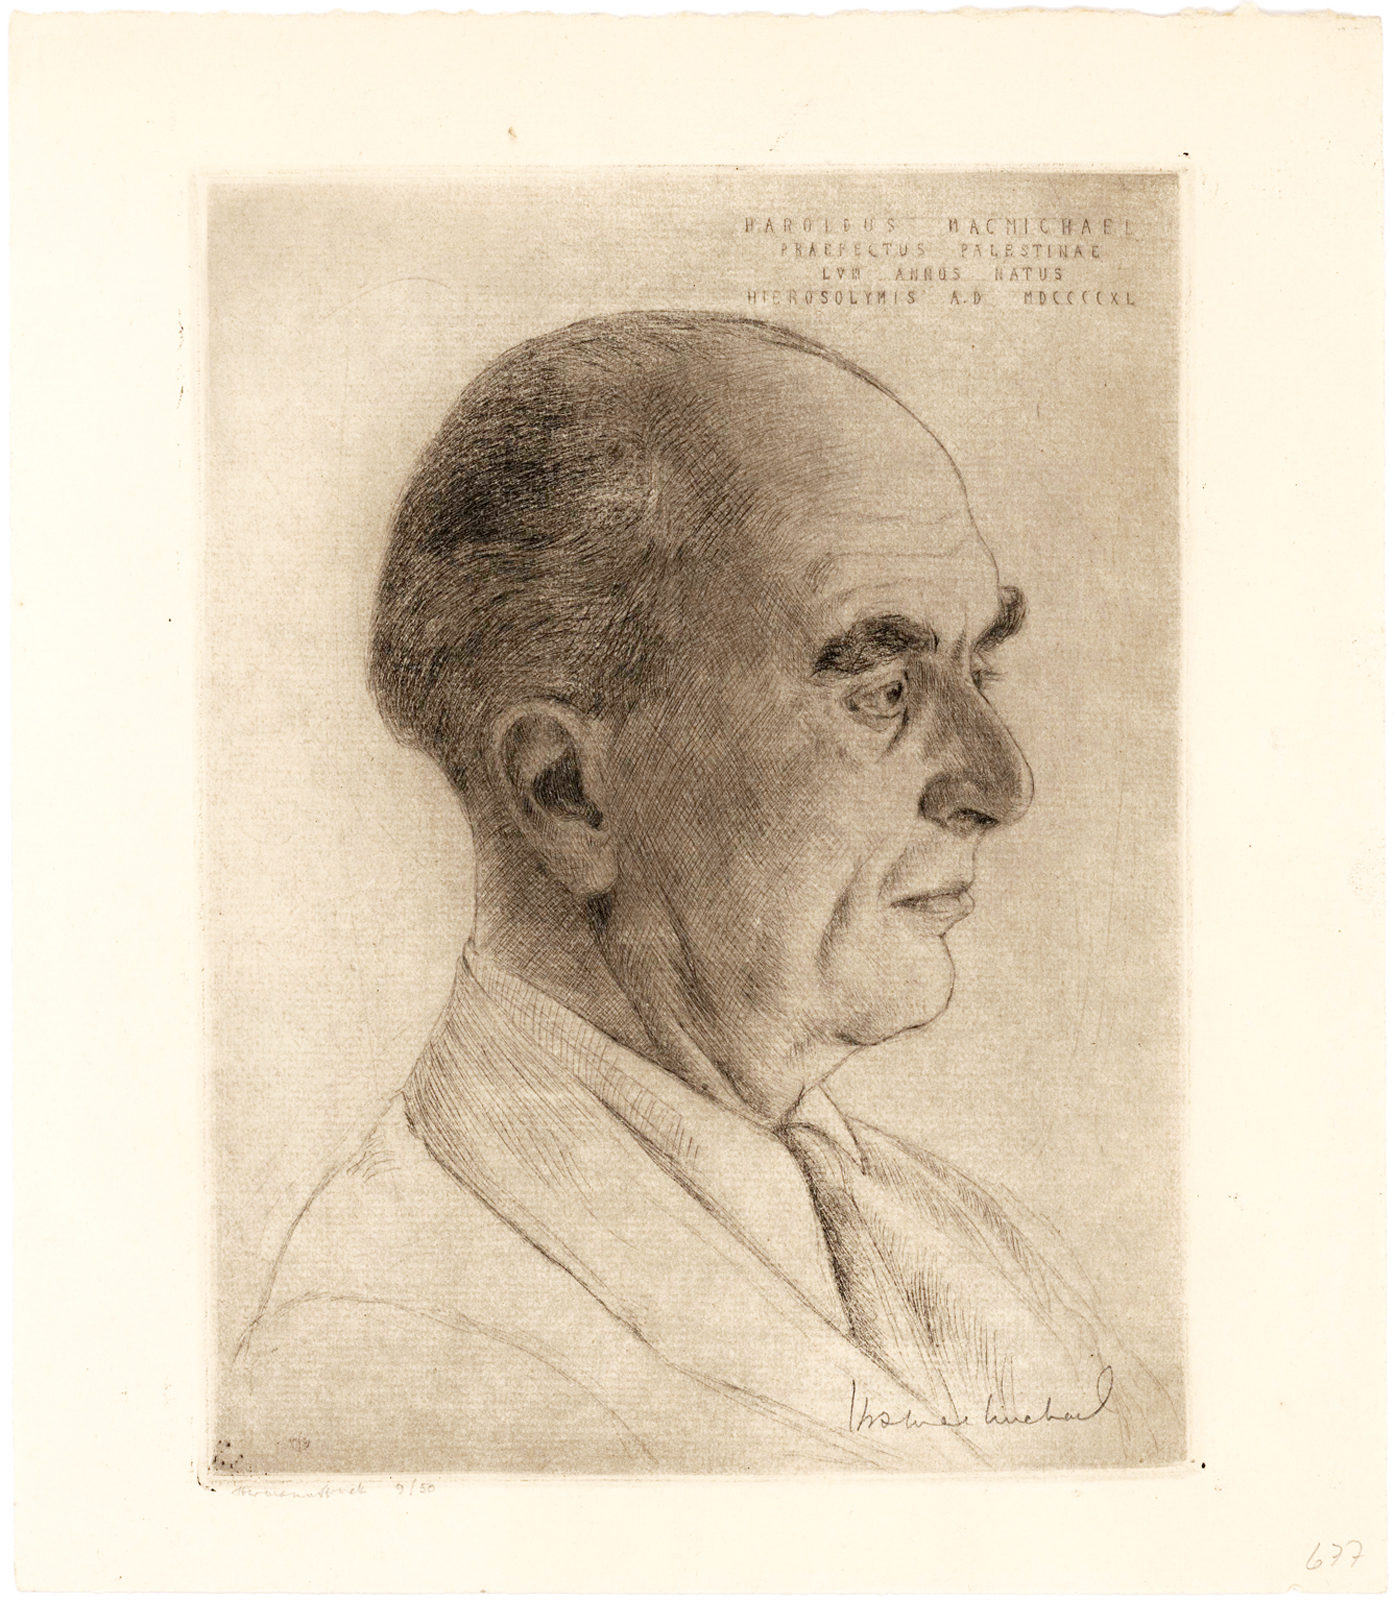 Hermann Struck Etching of Harold MacMichael, Palestine's High Commissioner, Signed by the Subject and the Artist